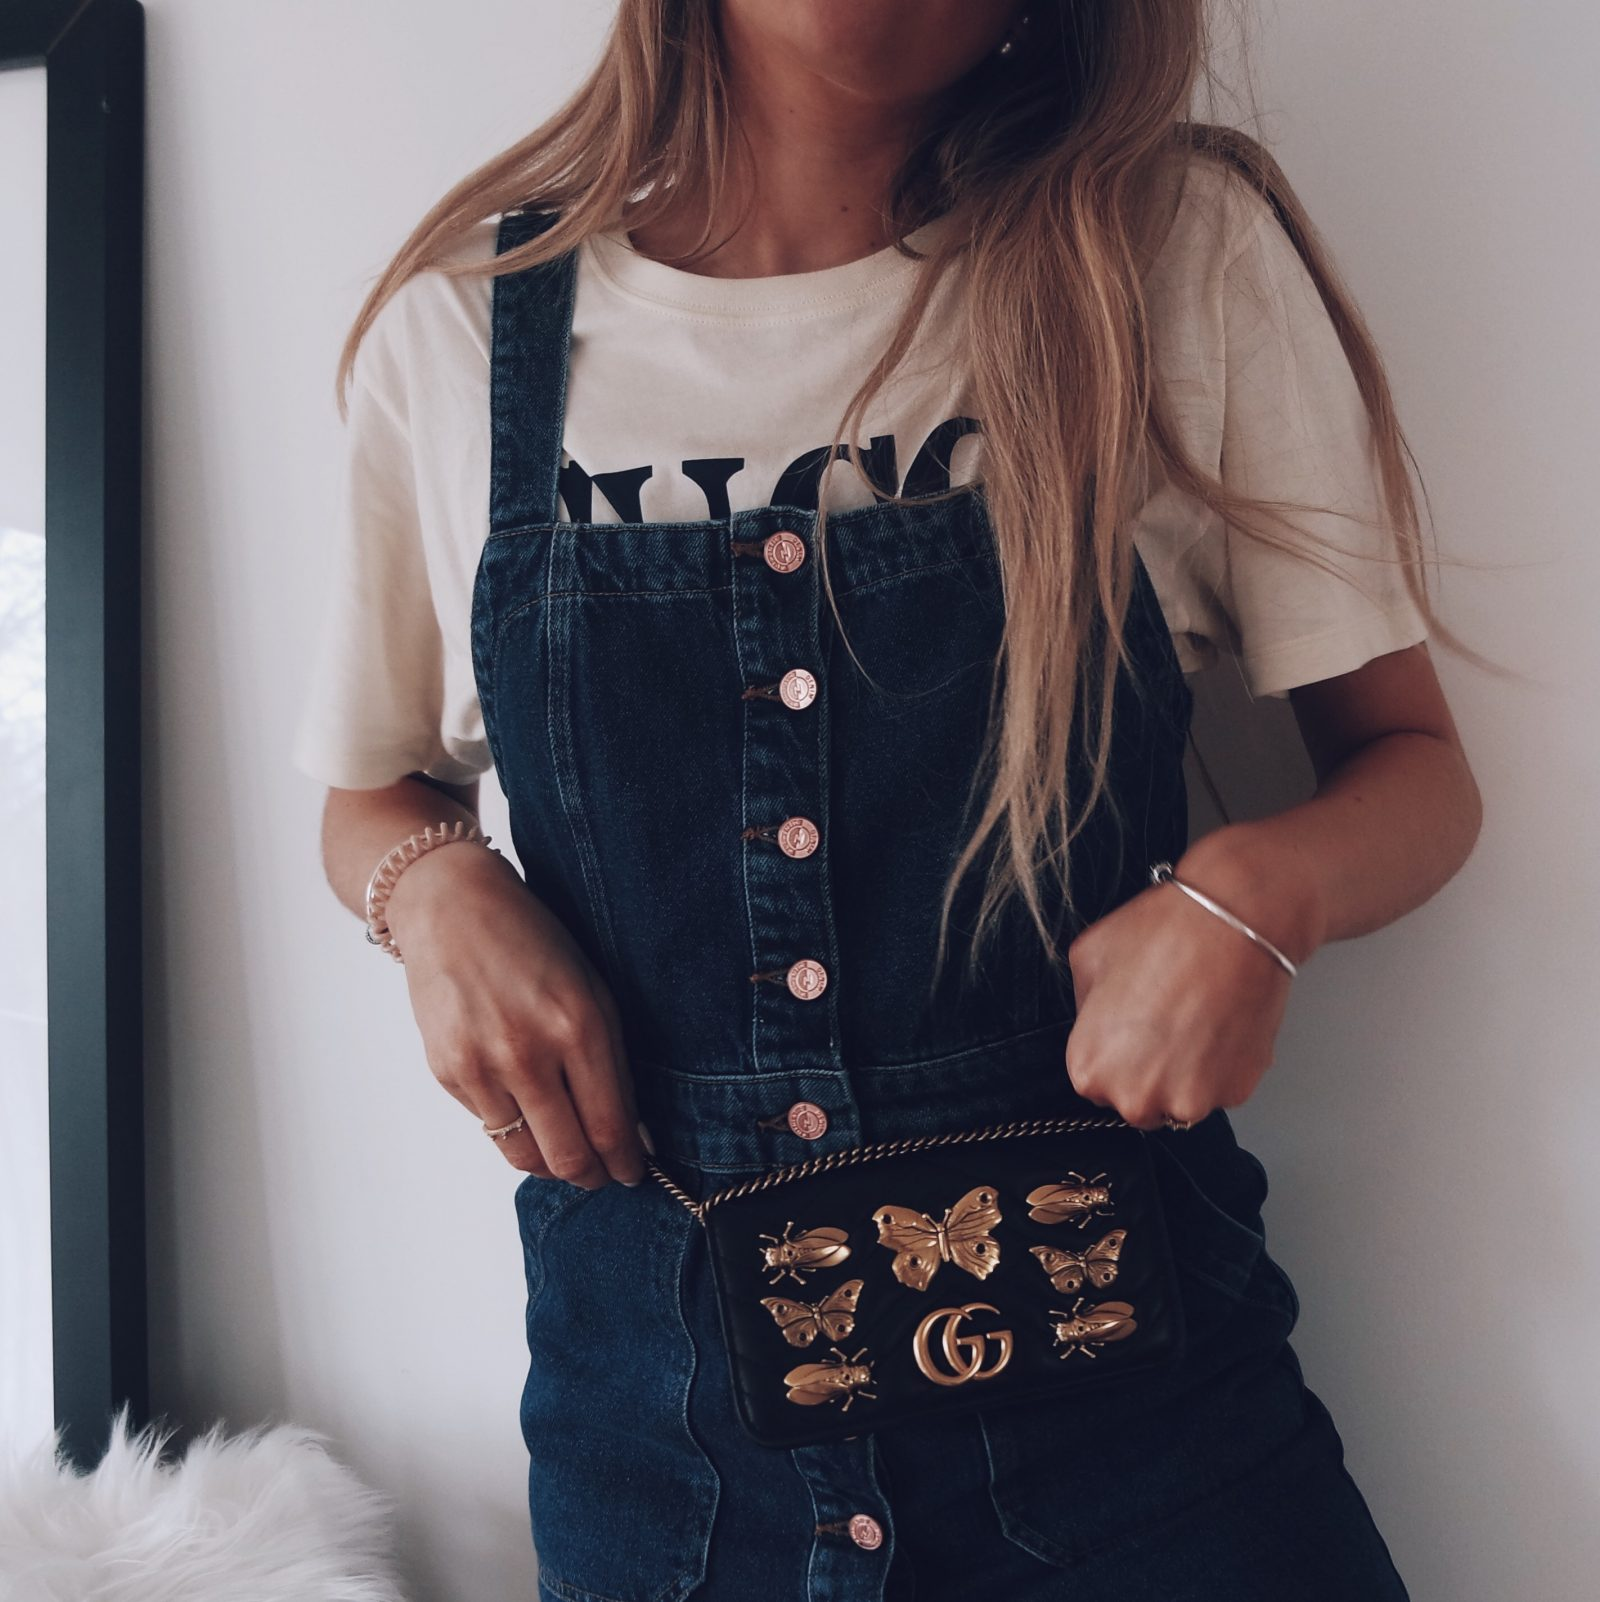 Gucci Slogan Tee Spring Outfit